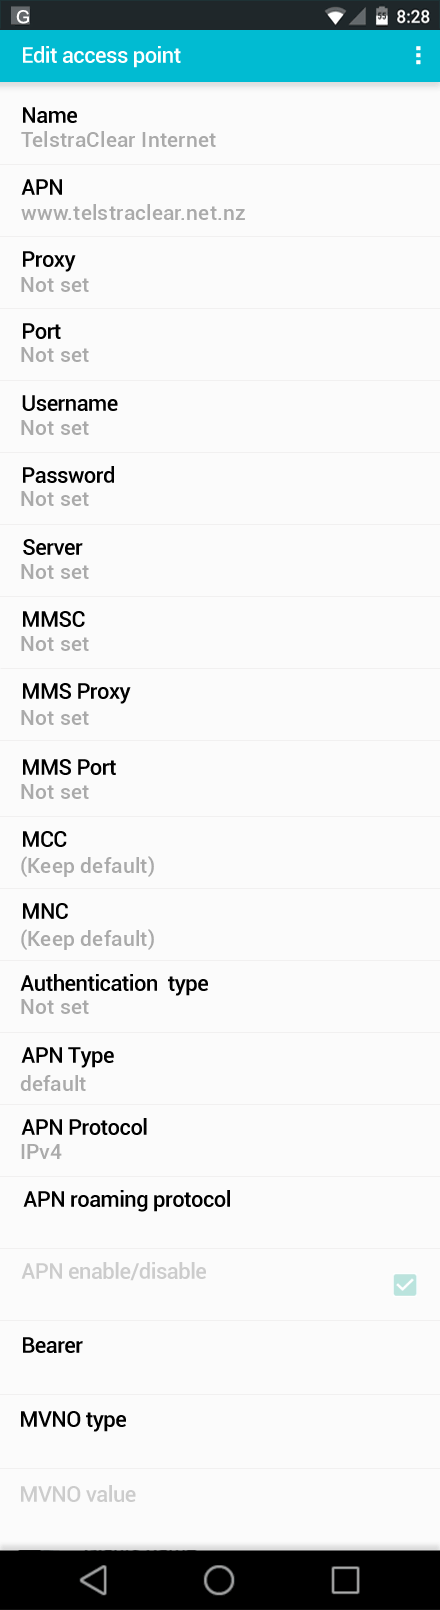 TelstraClear Internet APN settings for Android screenshot